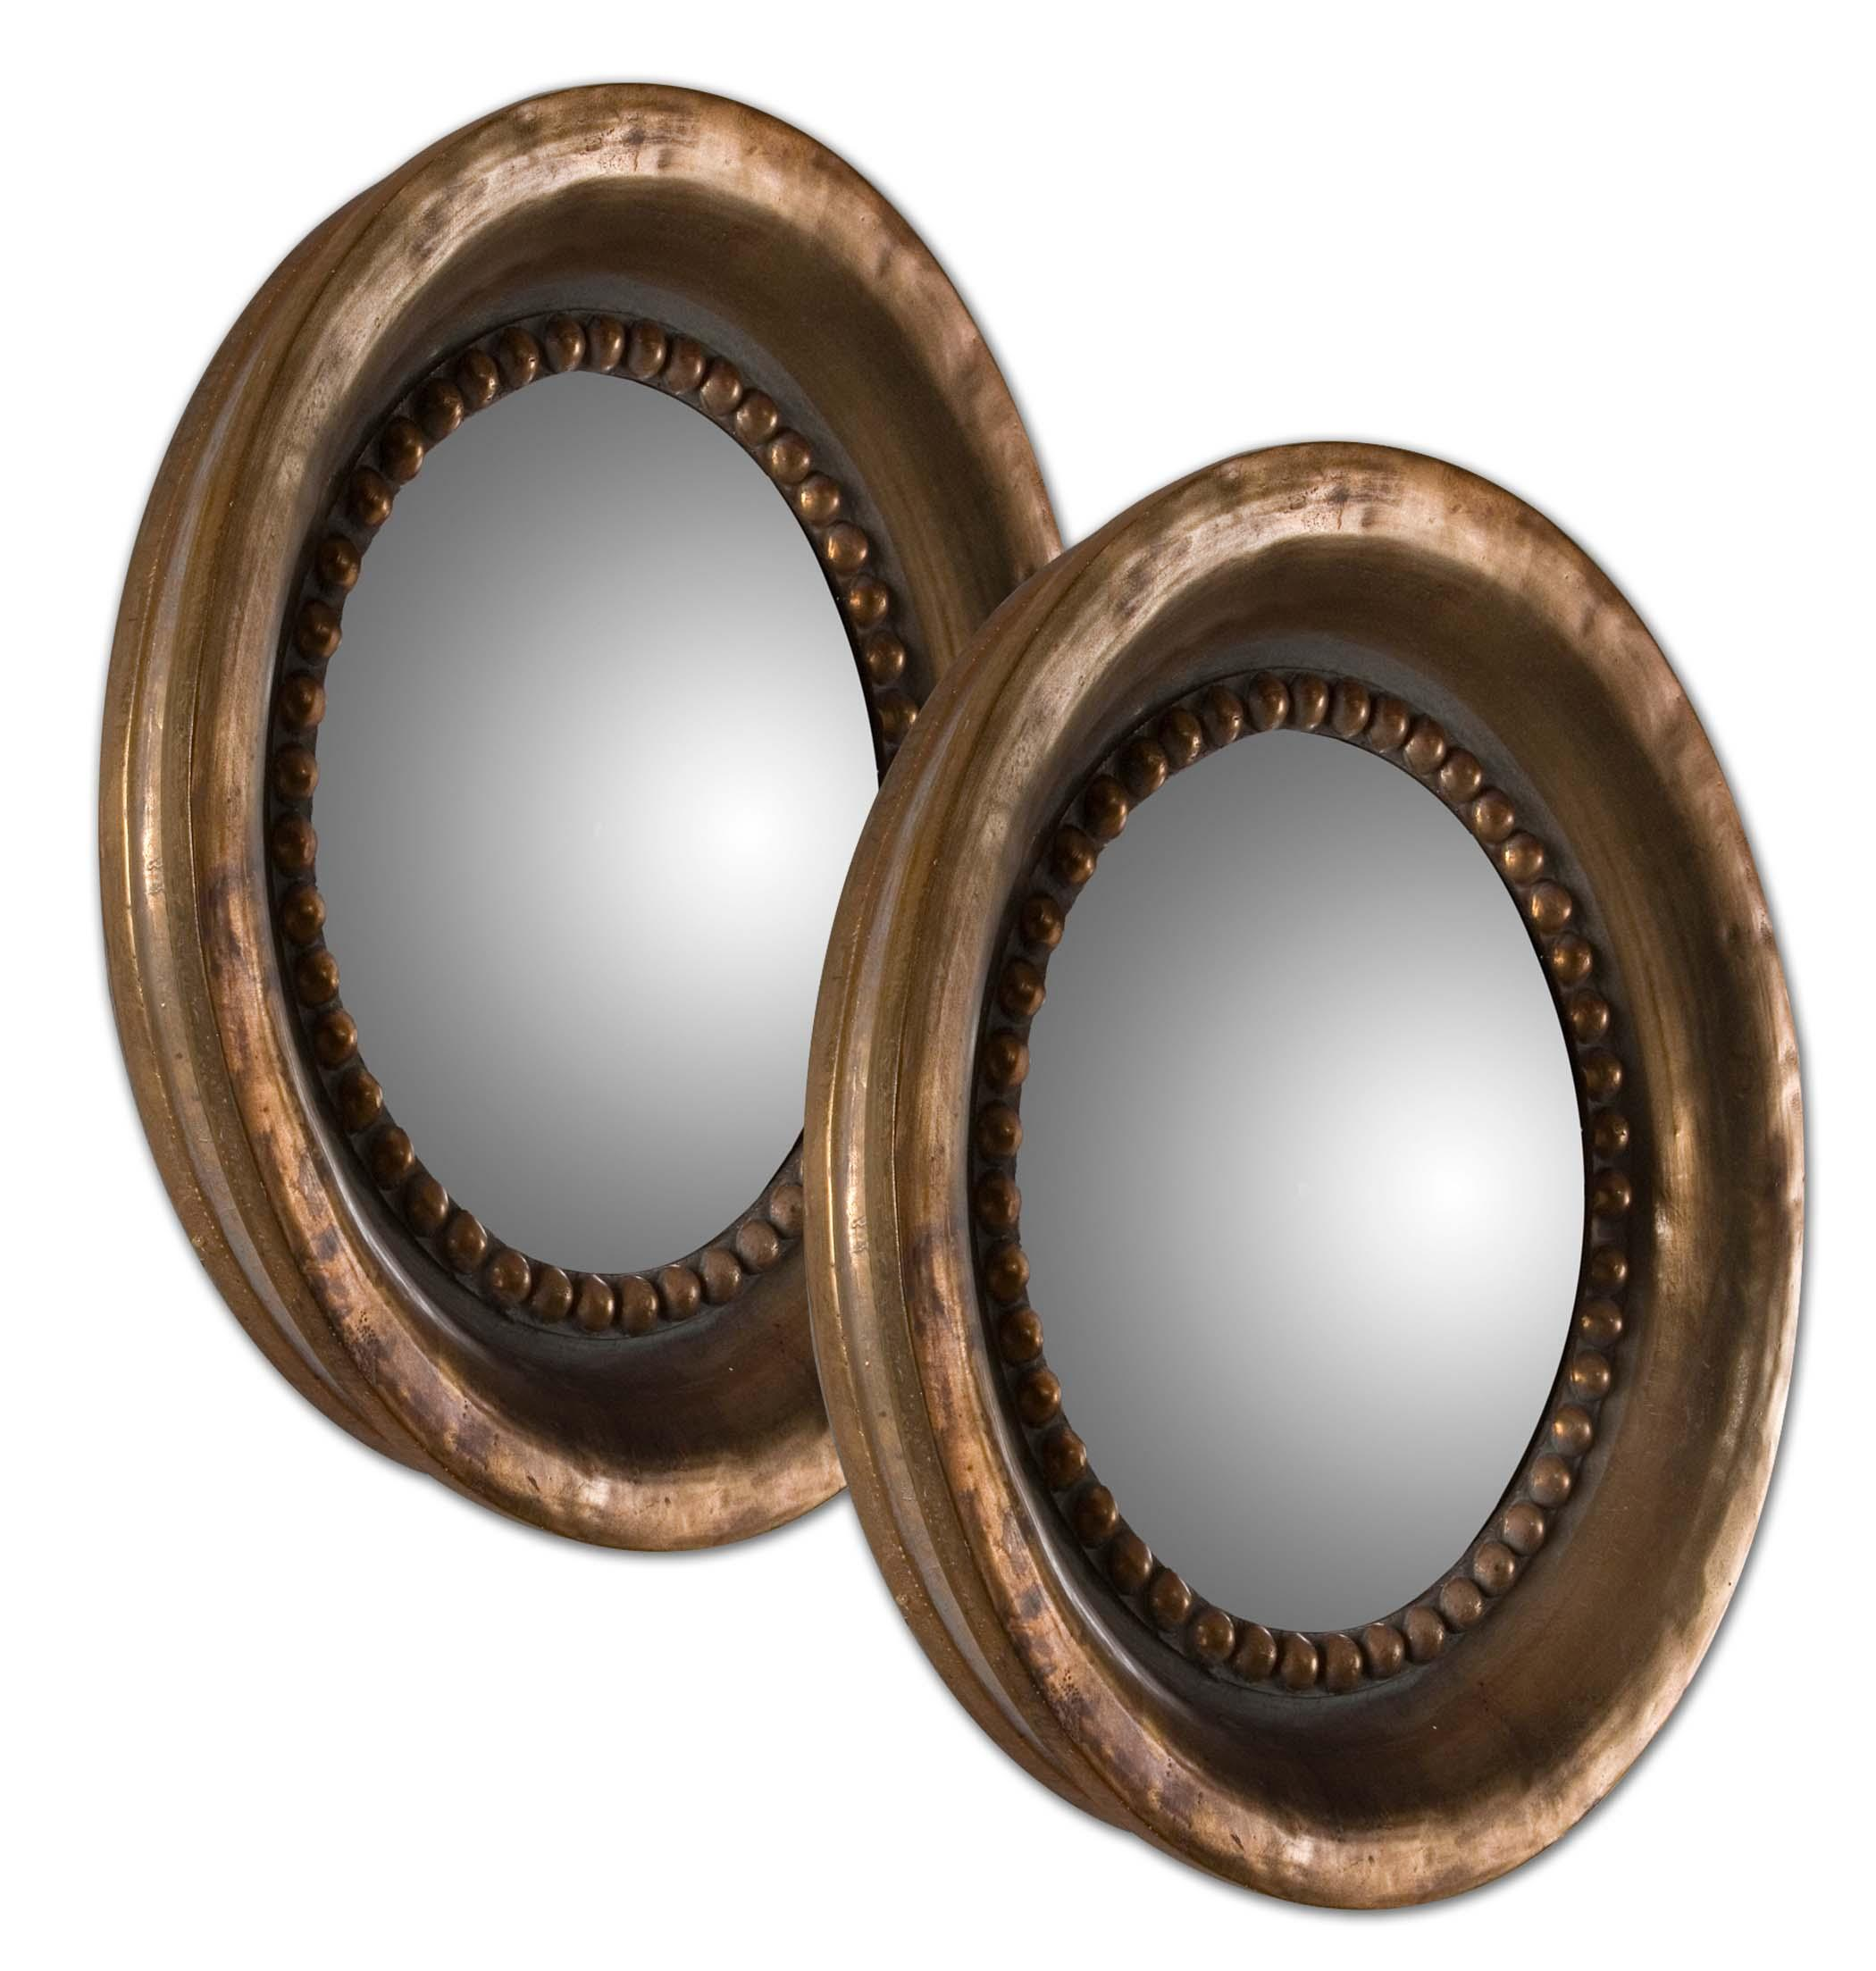 Uttermost Mirrors Tropea Rounds Wood Mirror - Item Number: 12847